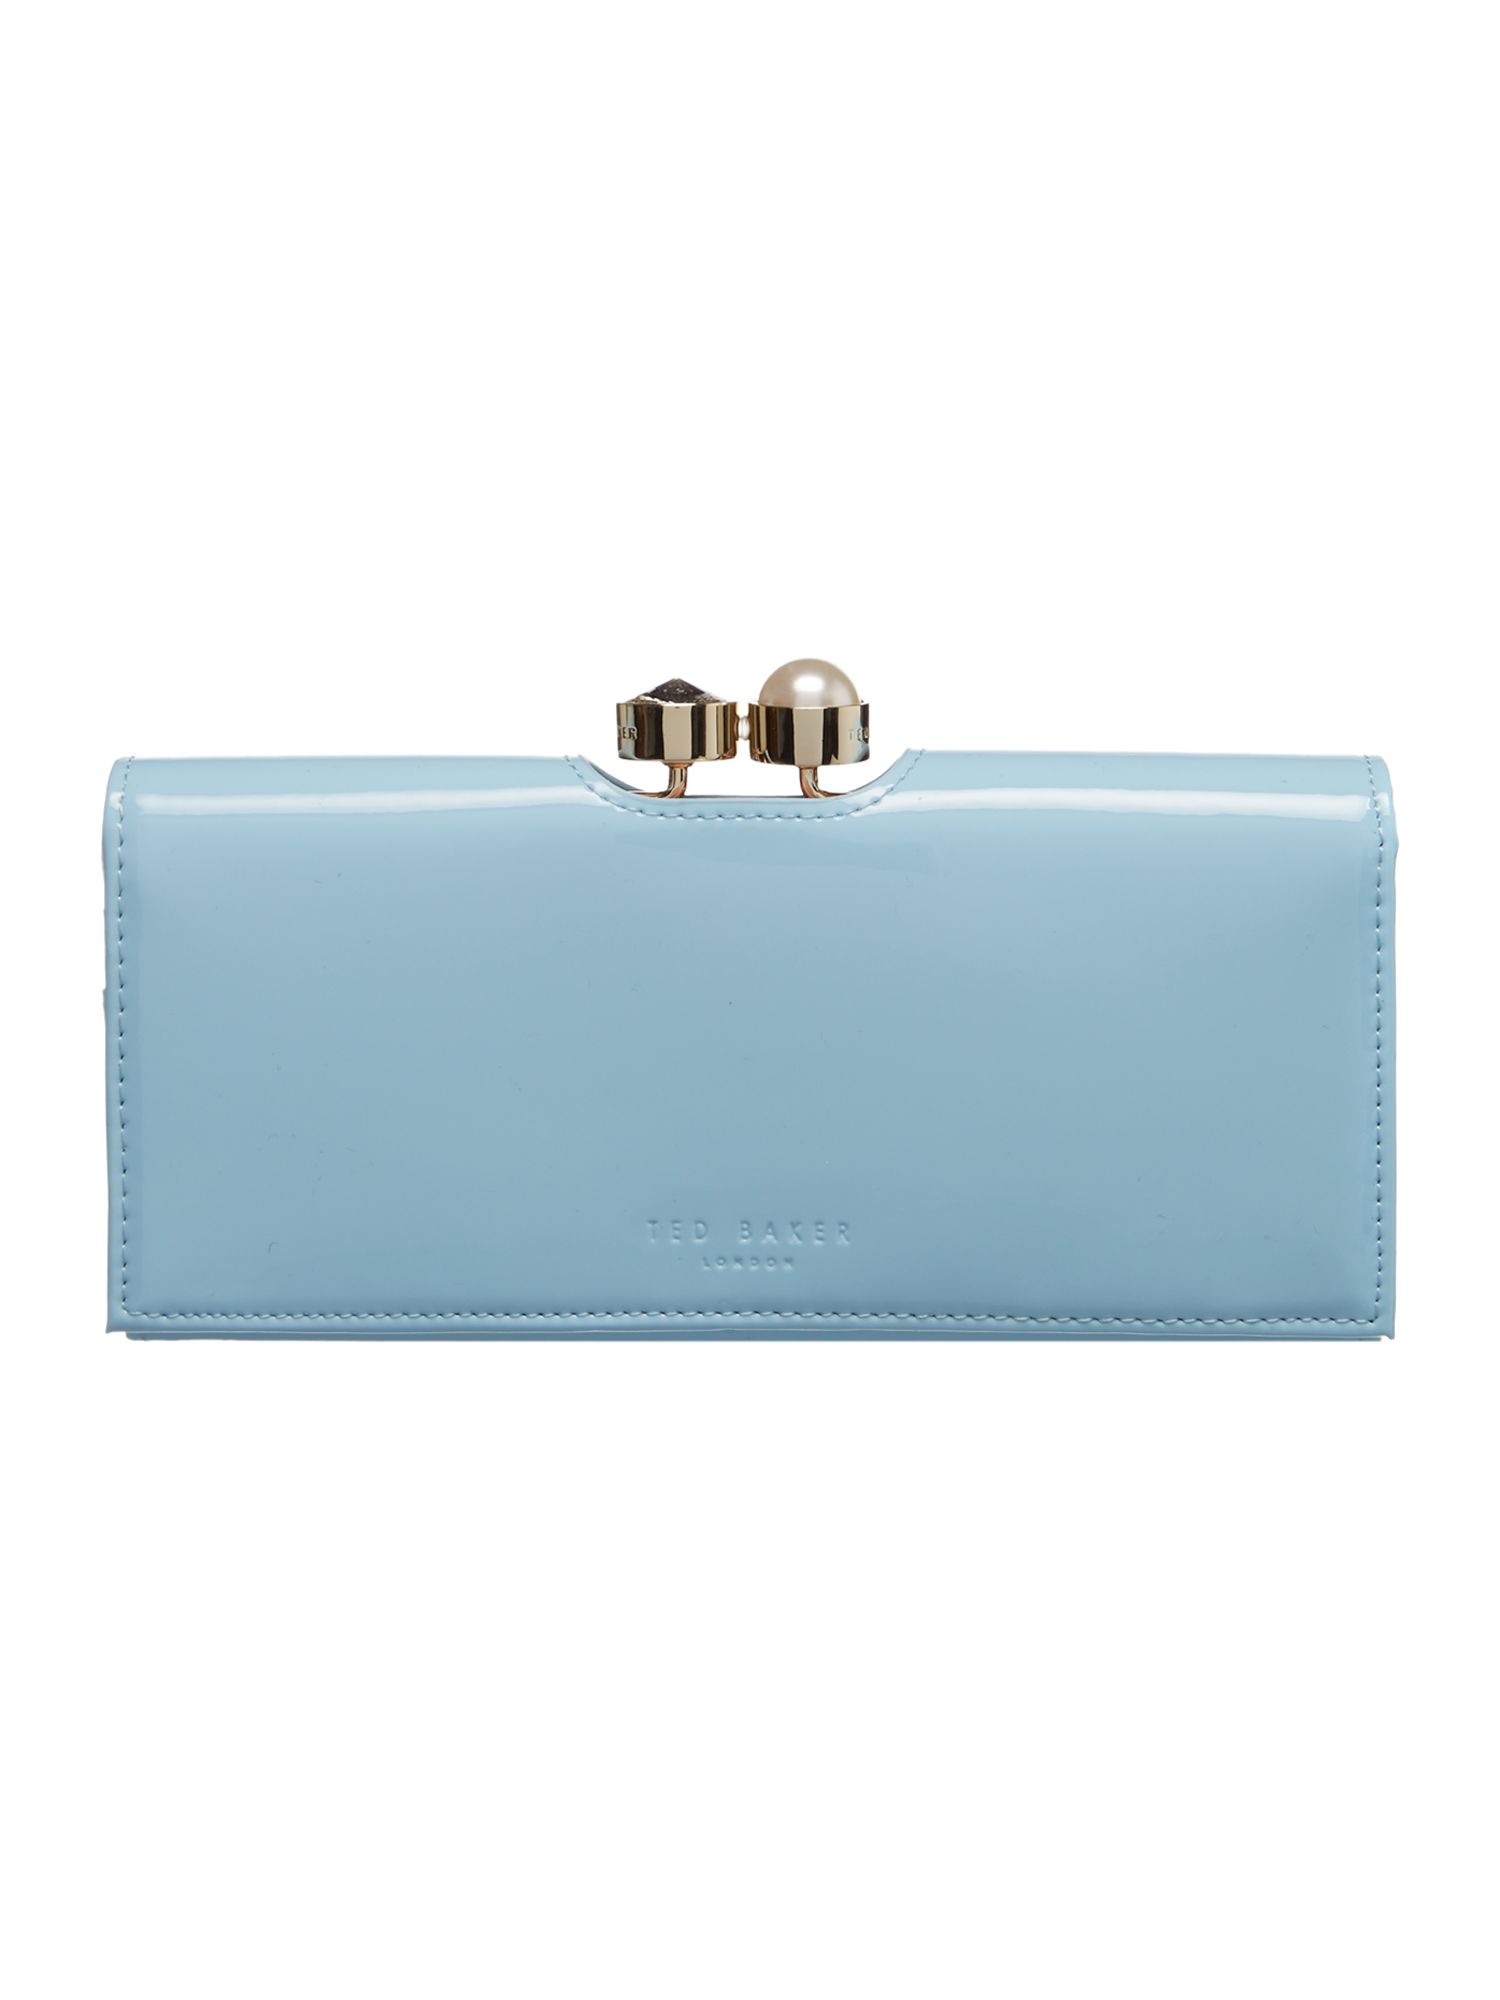 Ted Baker Elinorr large patent flapover purse Blue